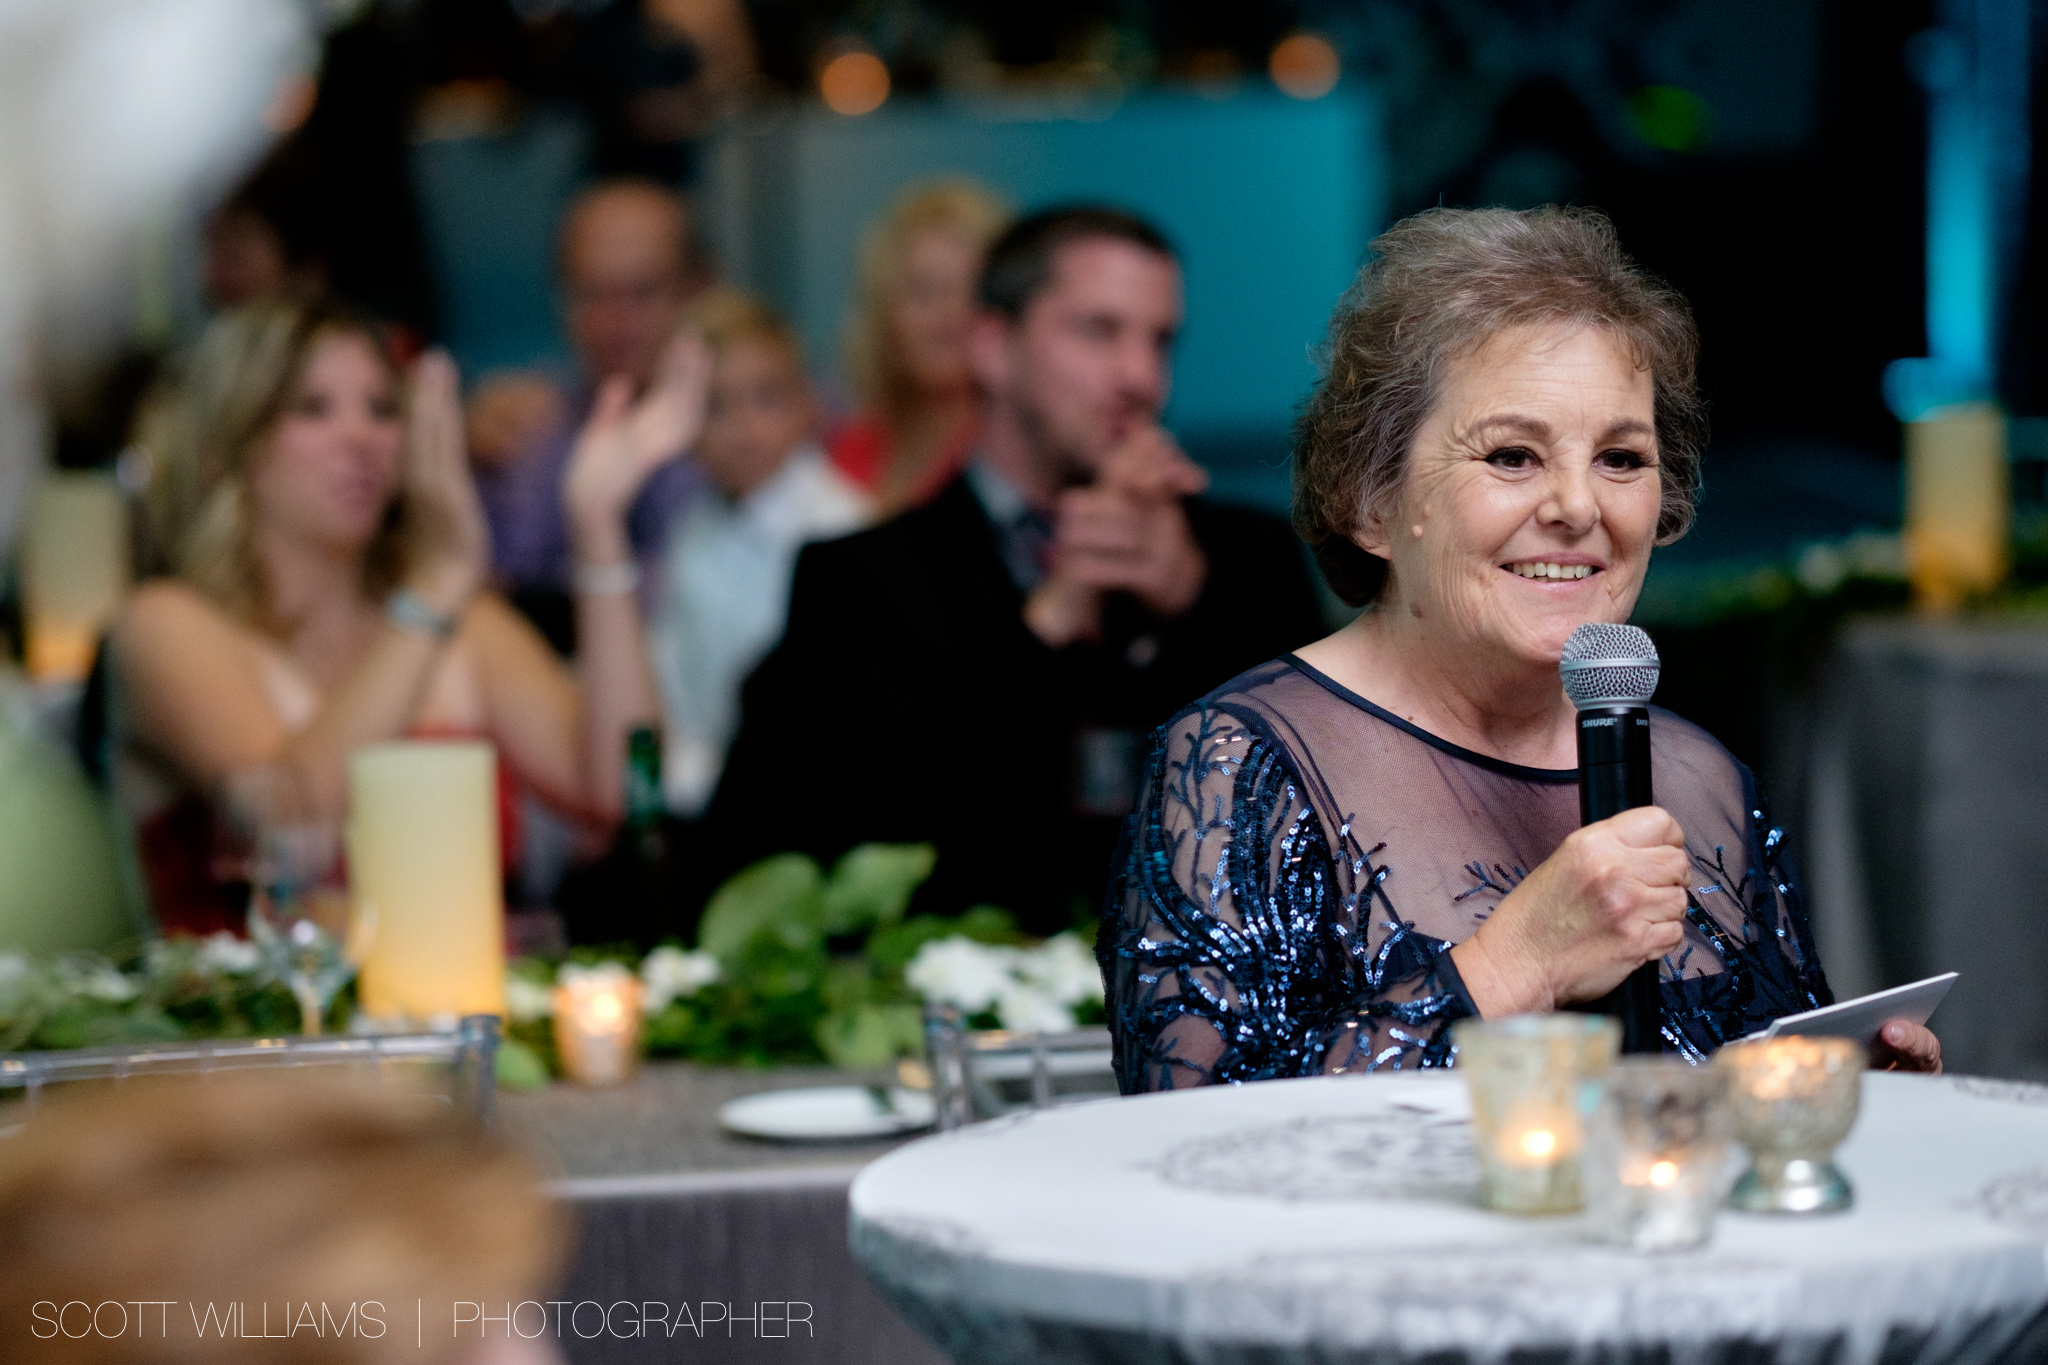 Christina's mother gives a heartfelt speech during the wedding reception at  their Malaparte wedding in Toronto.